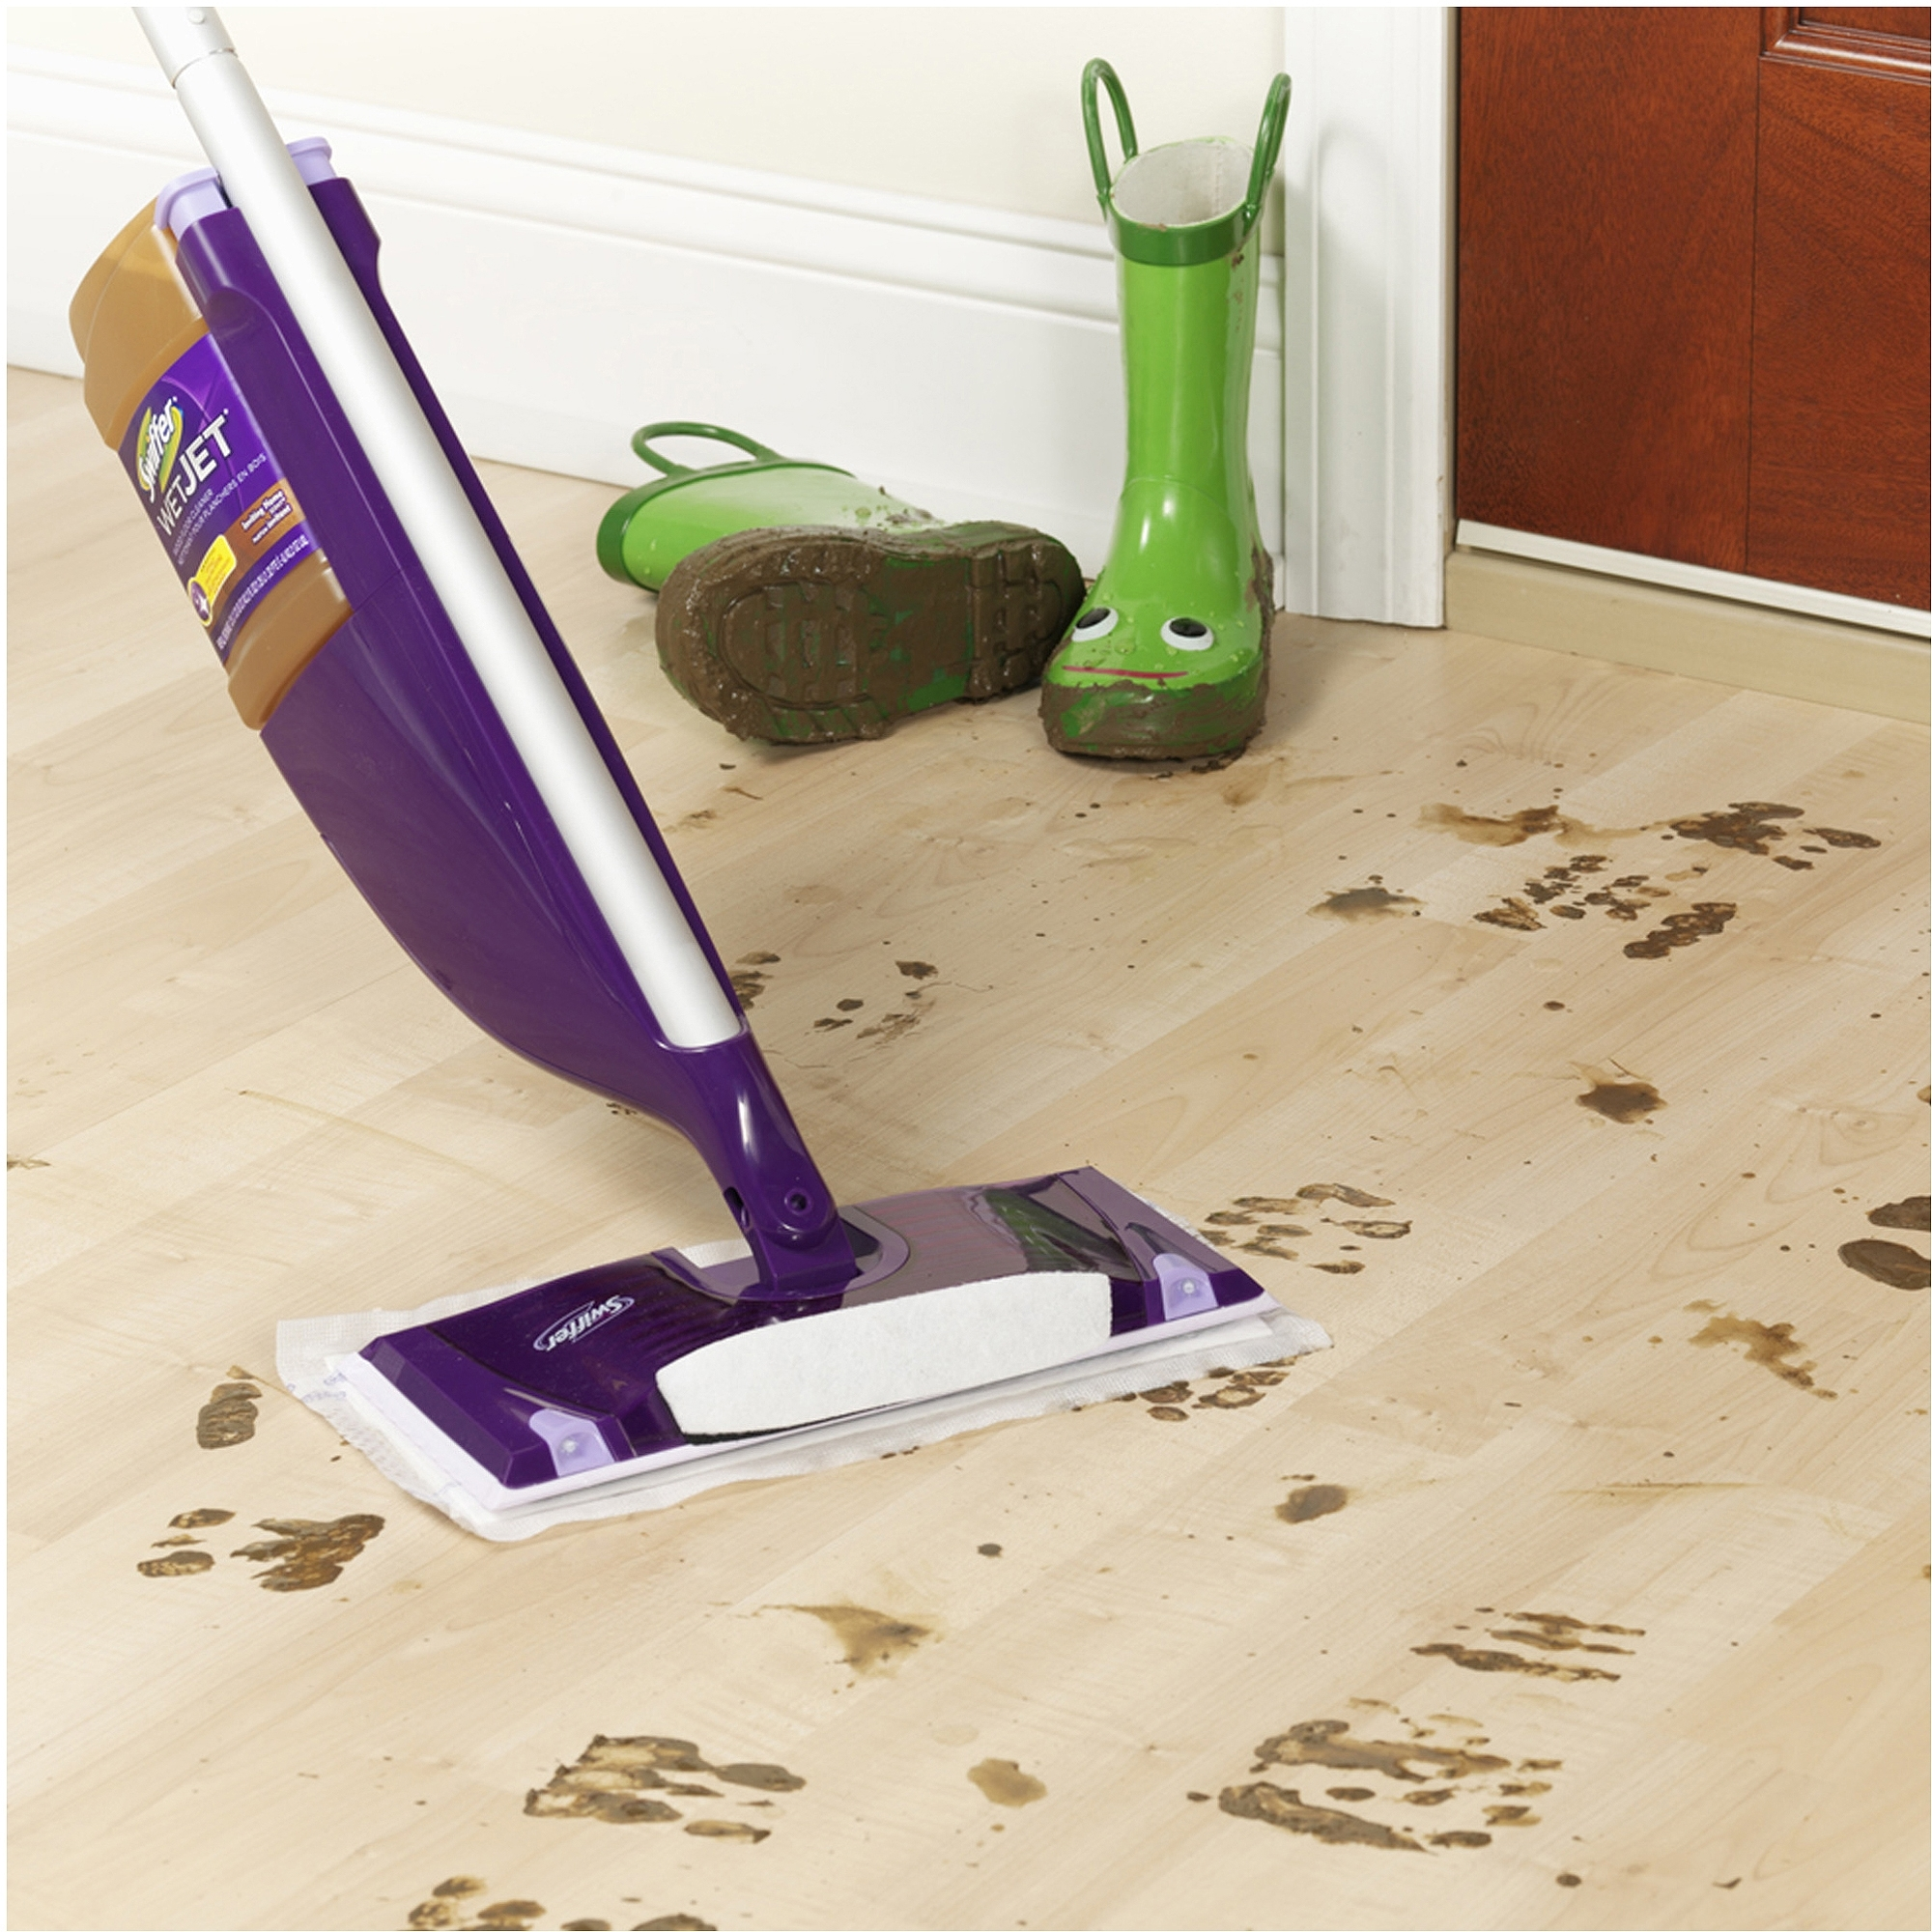 Permalink to Swiffer Safe For Laminate Wood Floors